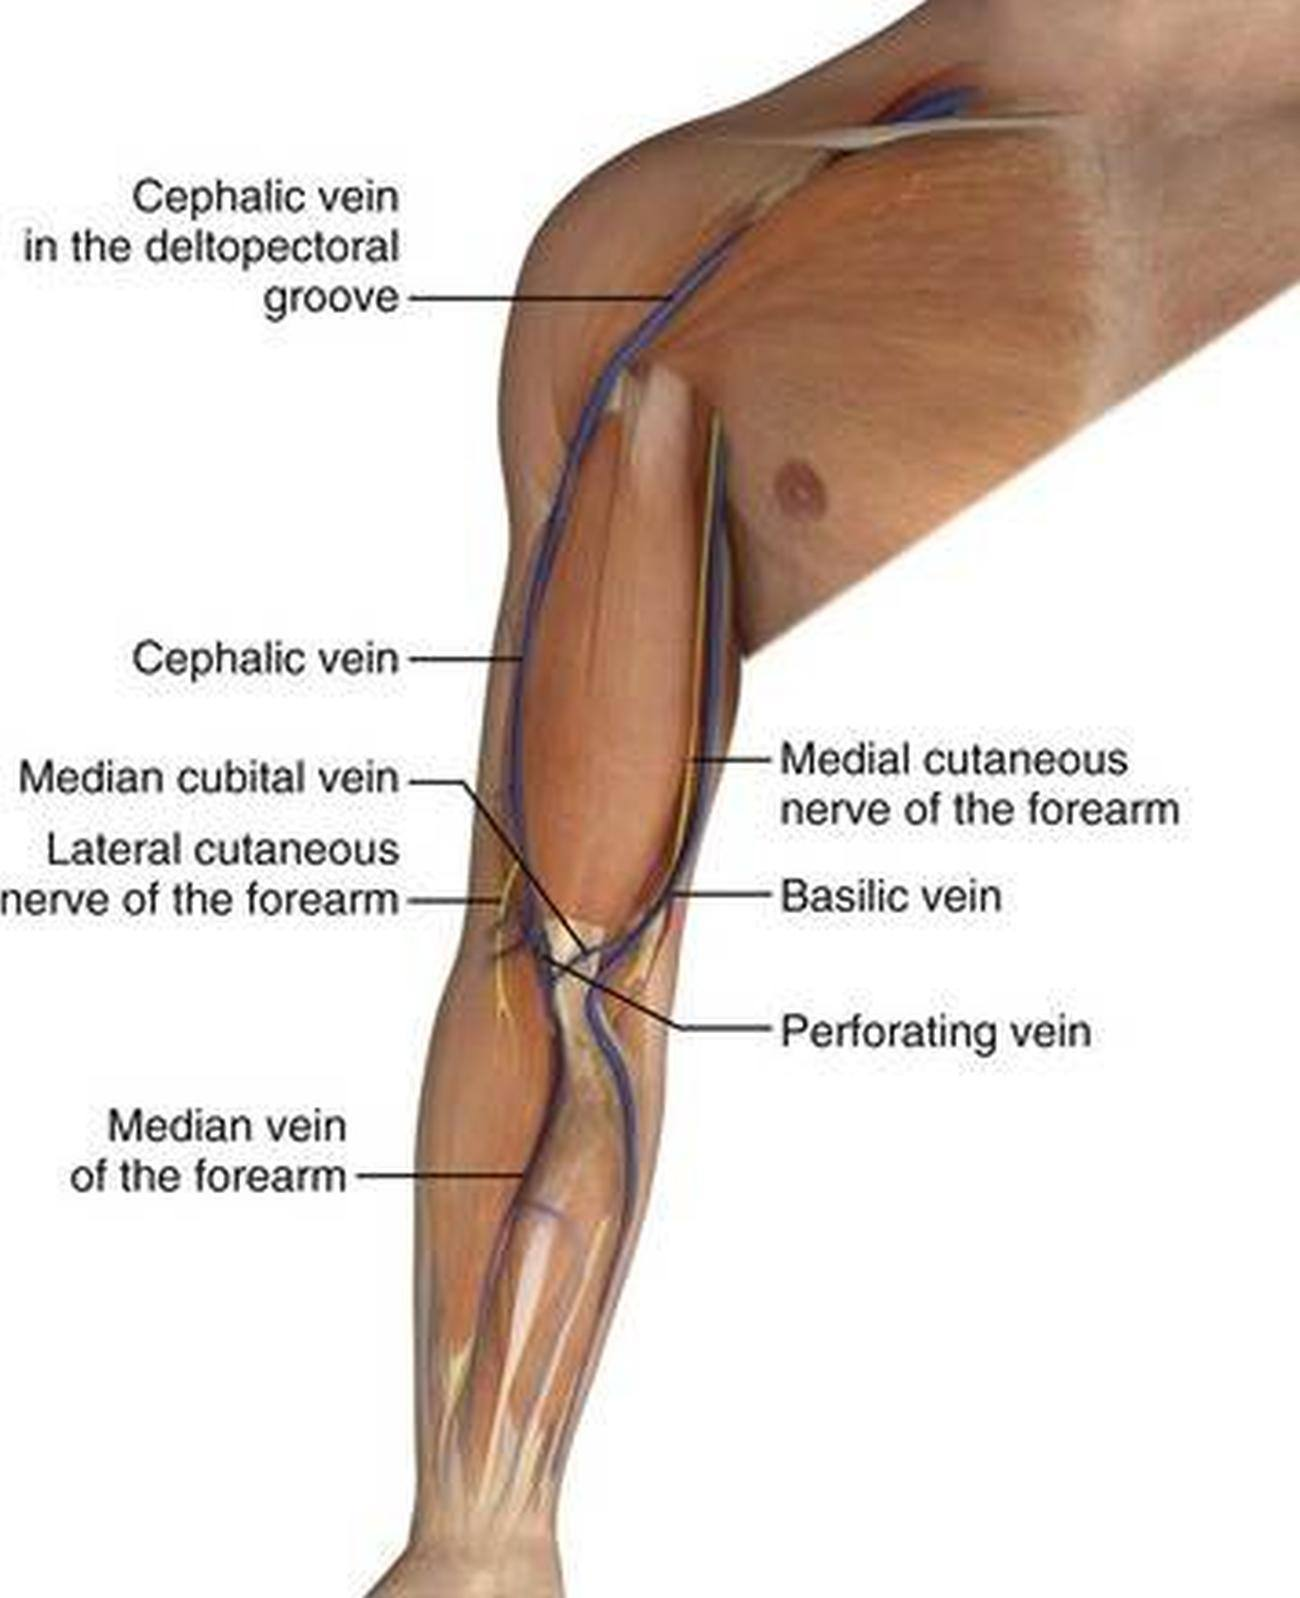 cephalic vein anatomy images - learn human anatomy image, Human Body